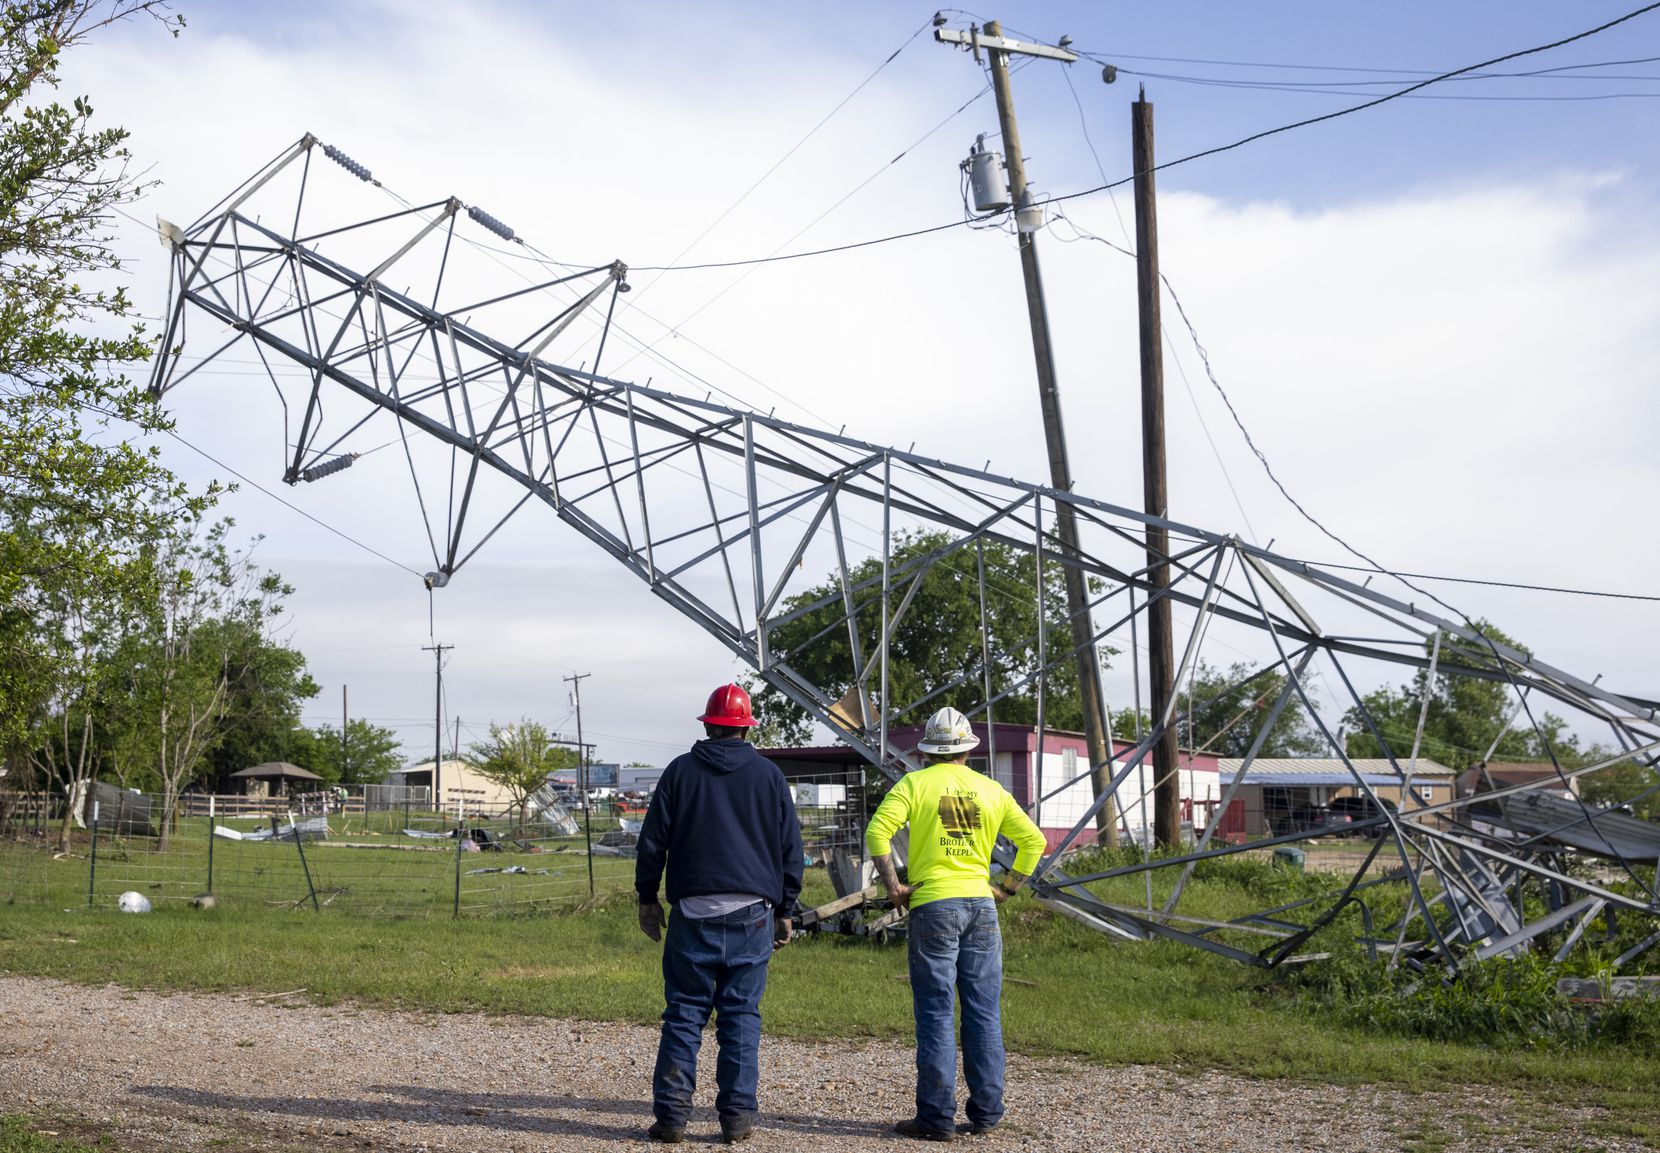 Oncor personnel survey a downed power structure where a Monday night tornado touched down just south of Waxahachie, Texas, on Tuesday, May 4, 2021. (Lynda M. González/The Dallas Morning News)